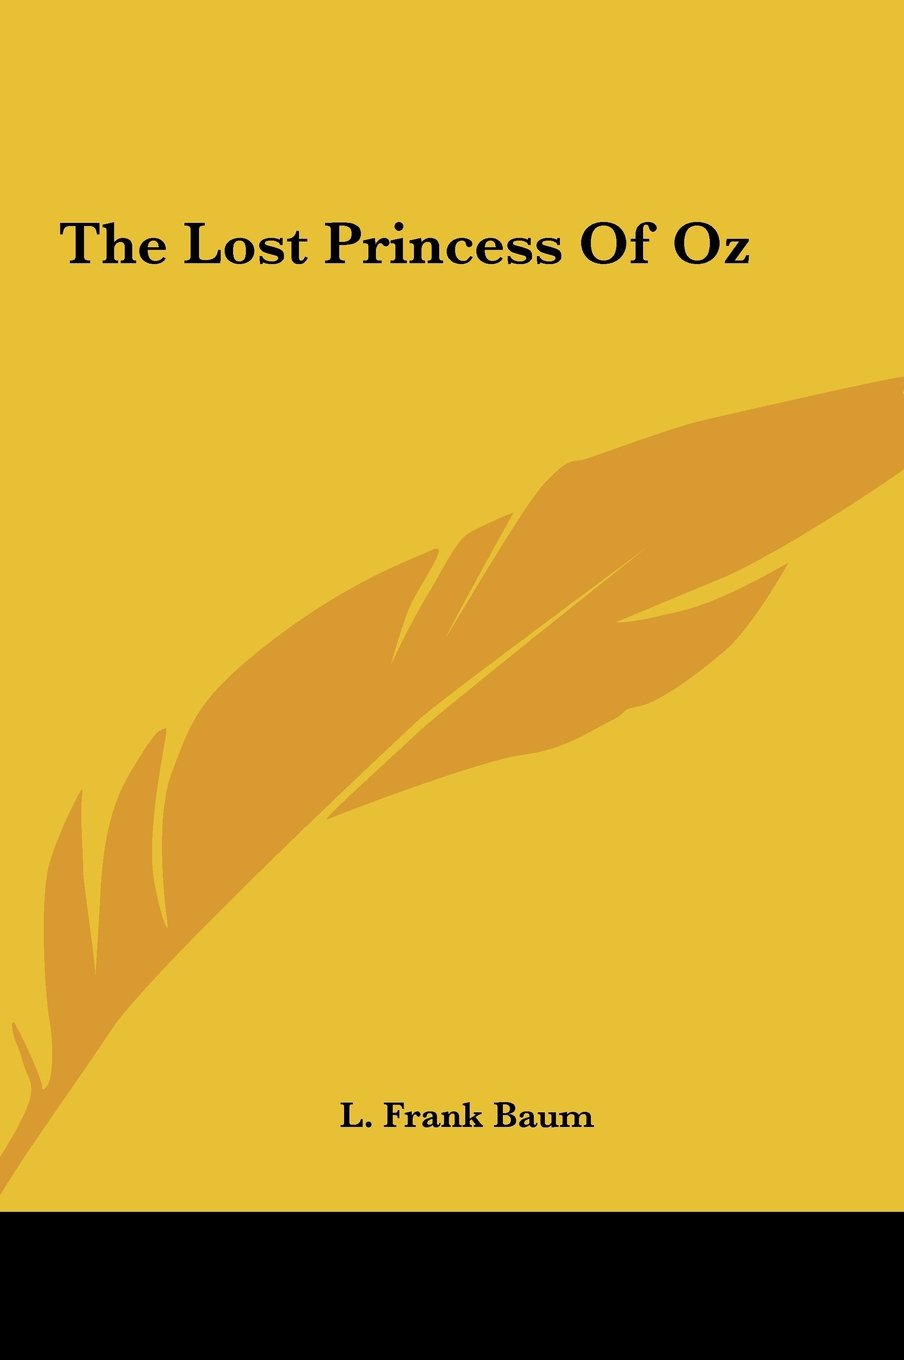 The Lost Princess Of Oz pdf